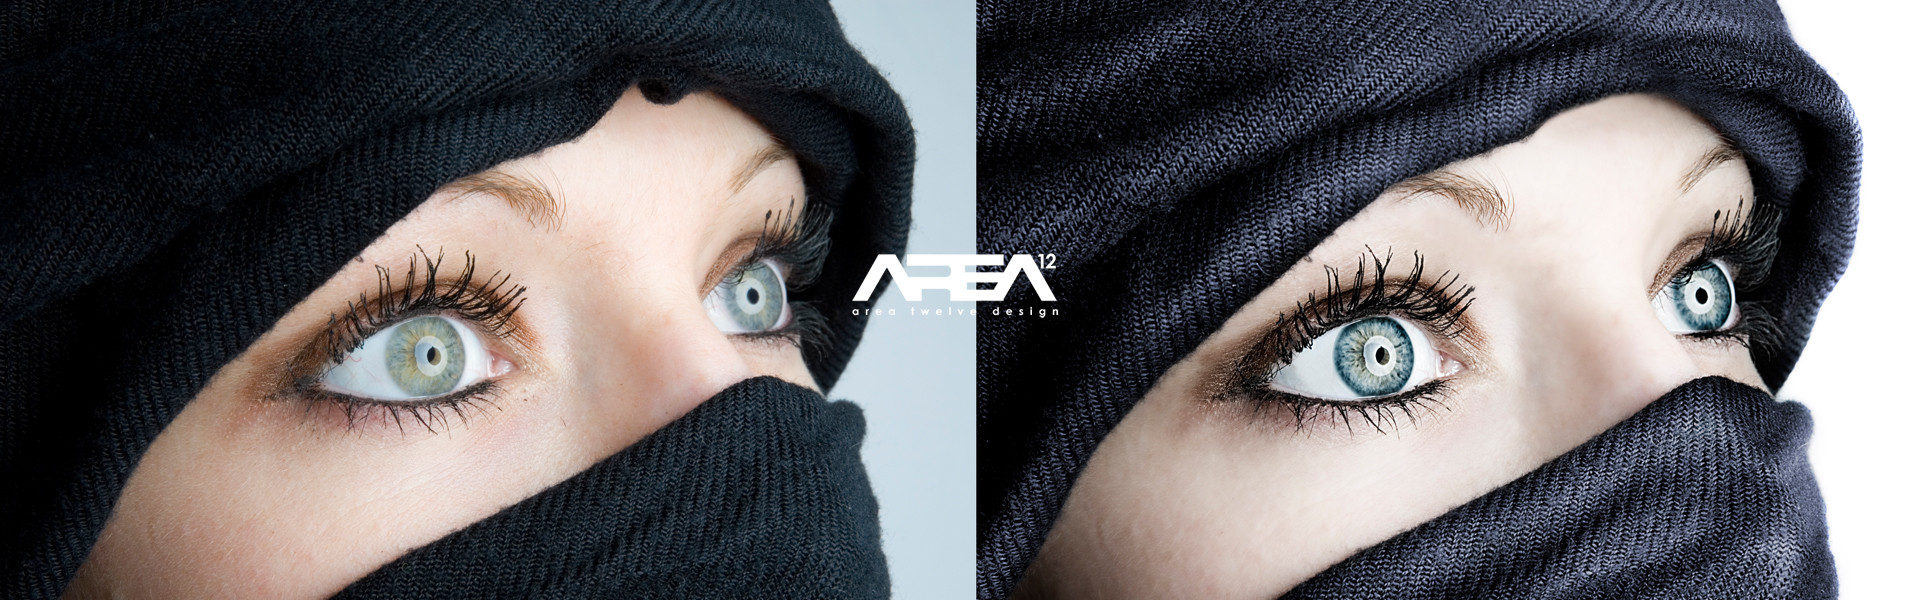 before_after_eyes_woman